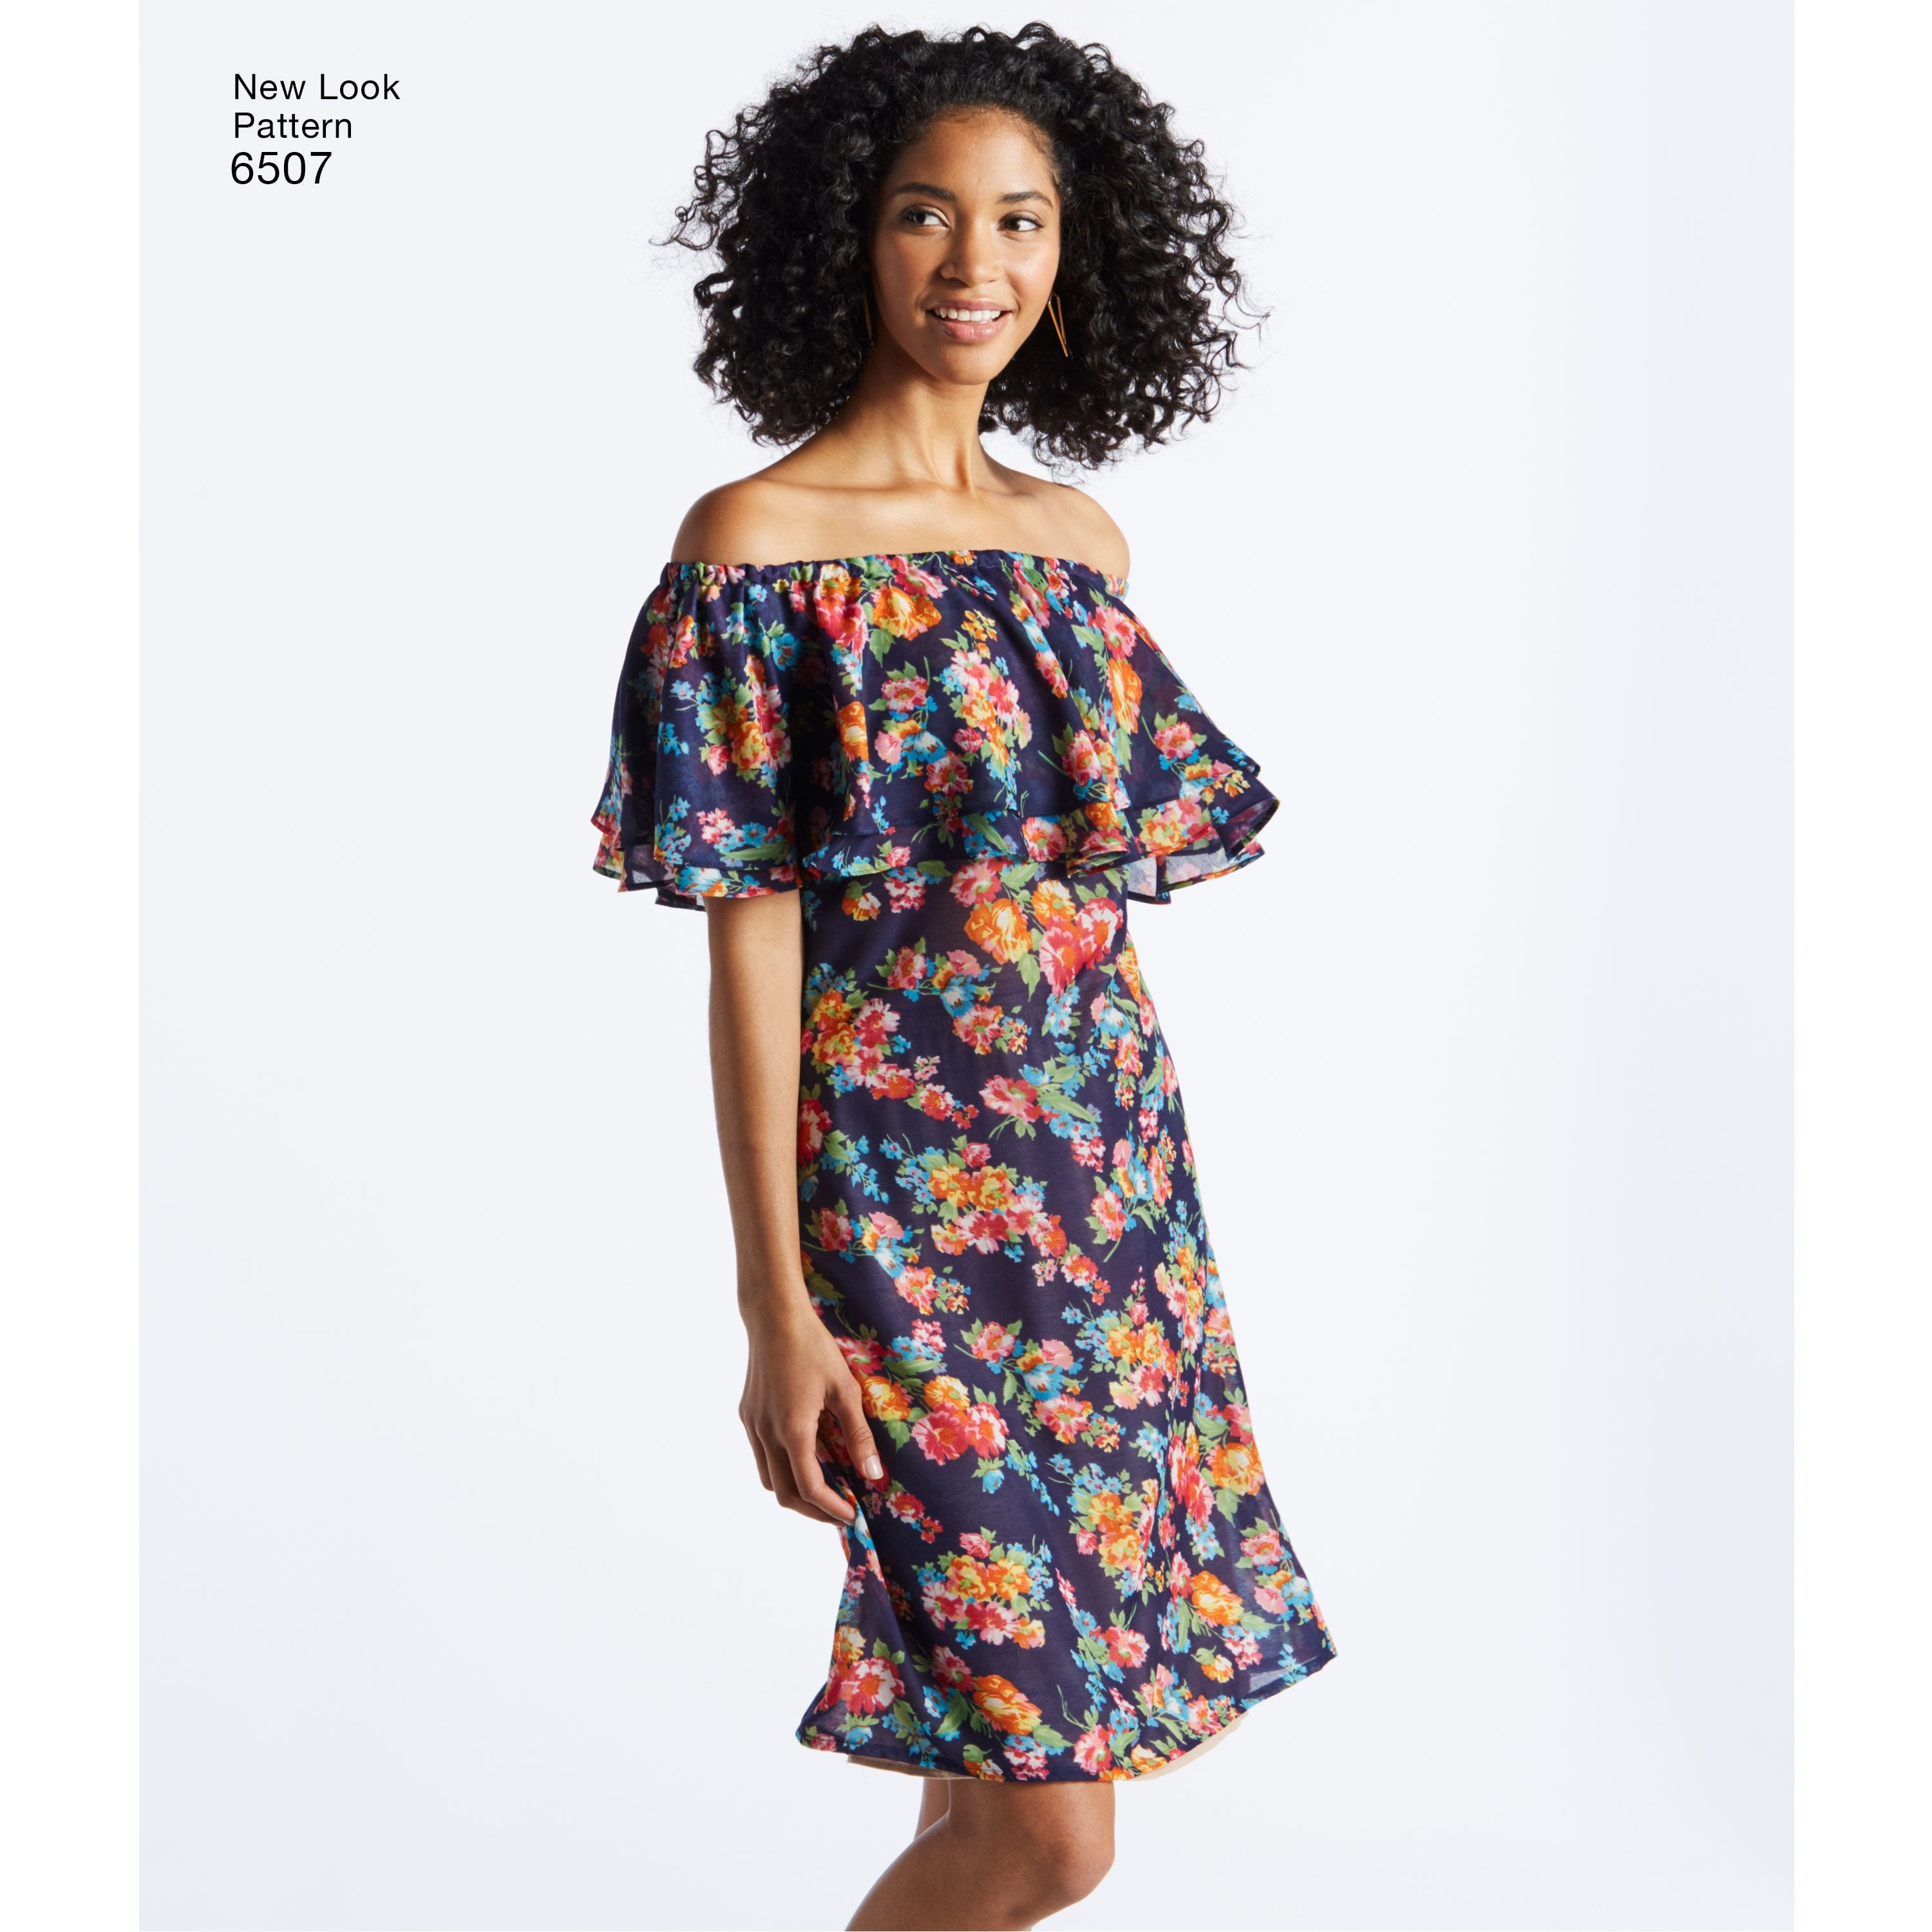 b3e36afb810 NL6507 Women s Dresses and Top — jaycotts.co.uk - Sewing Supplies